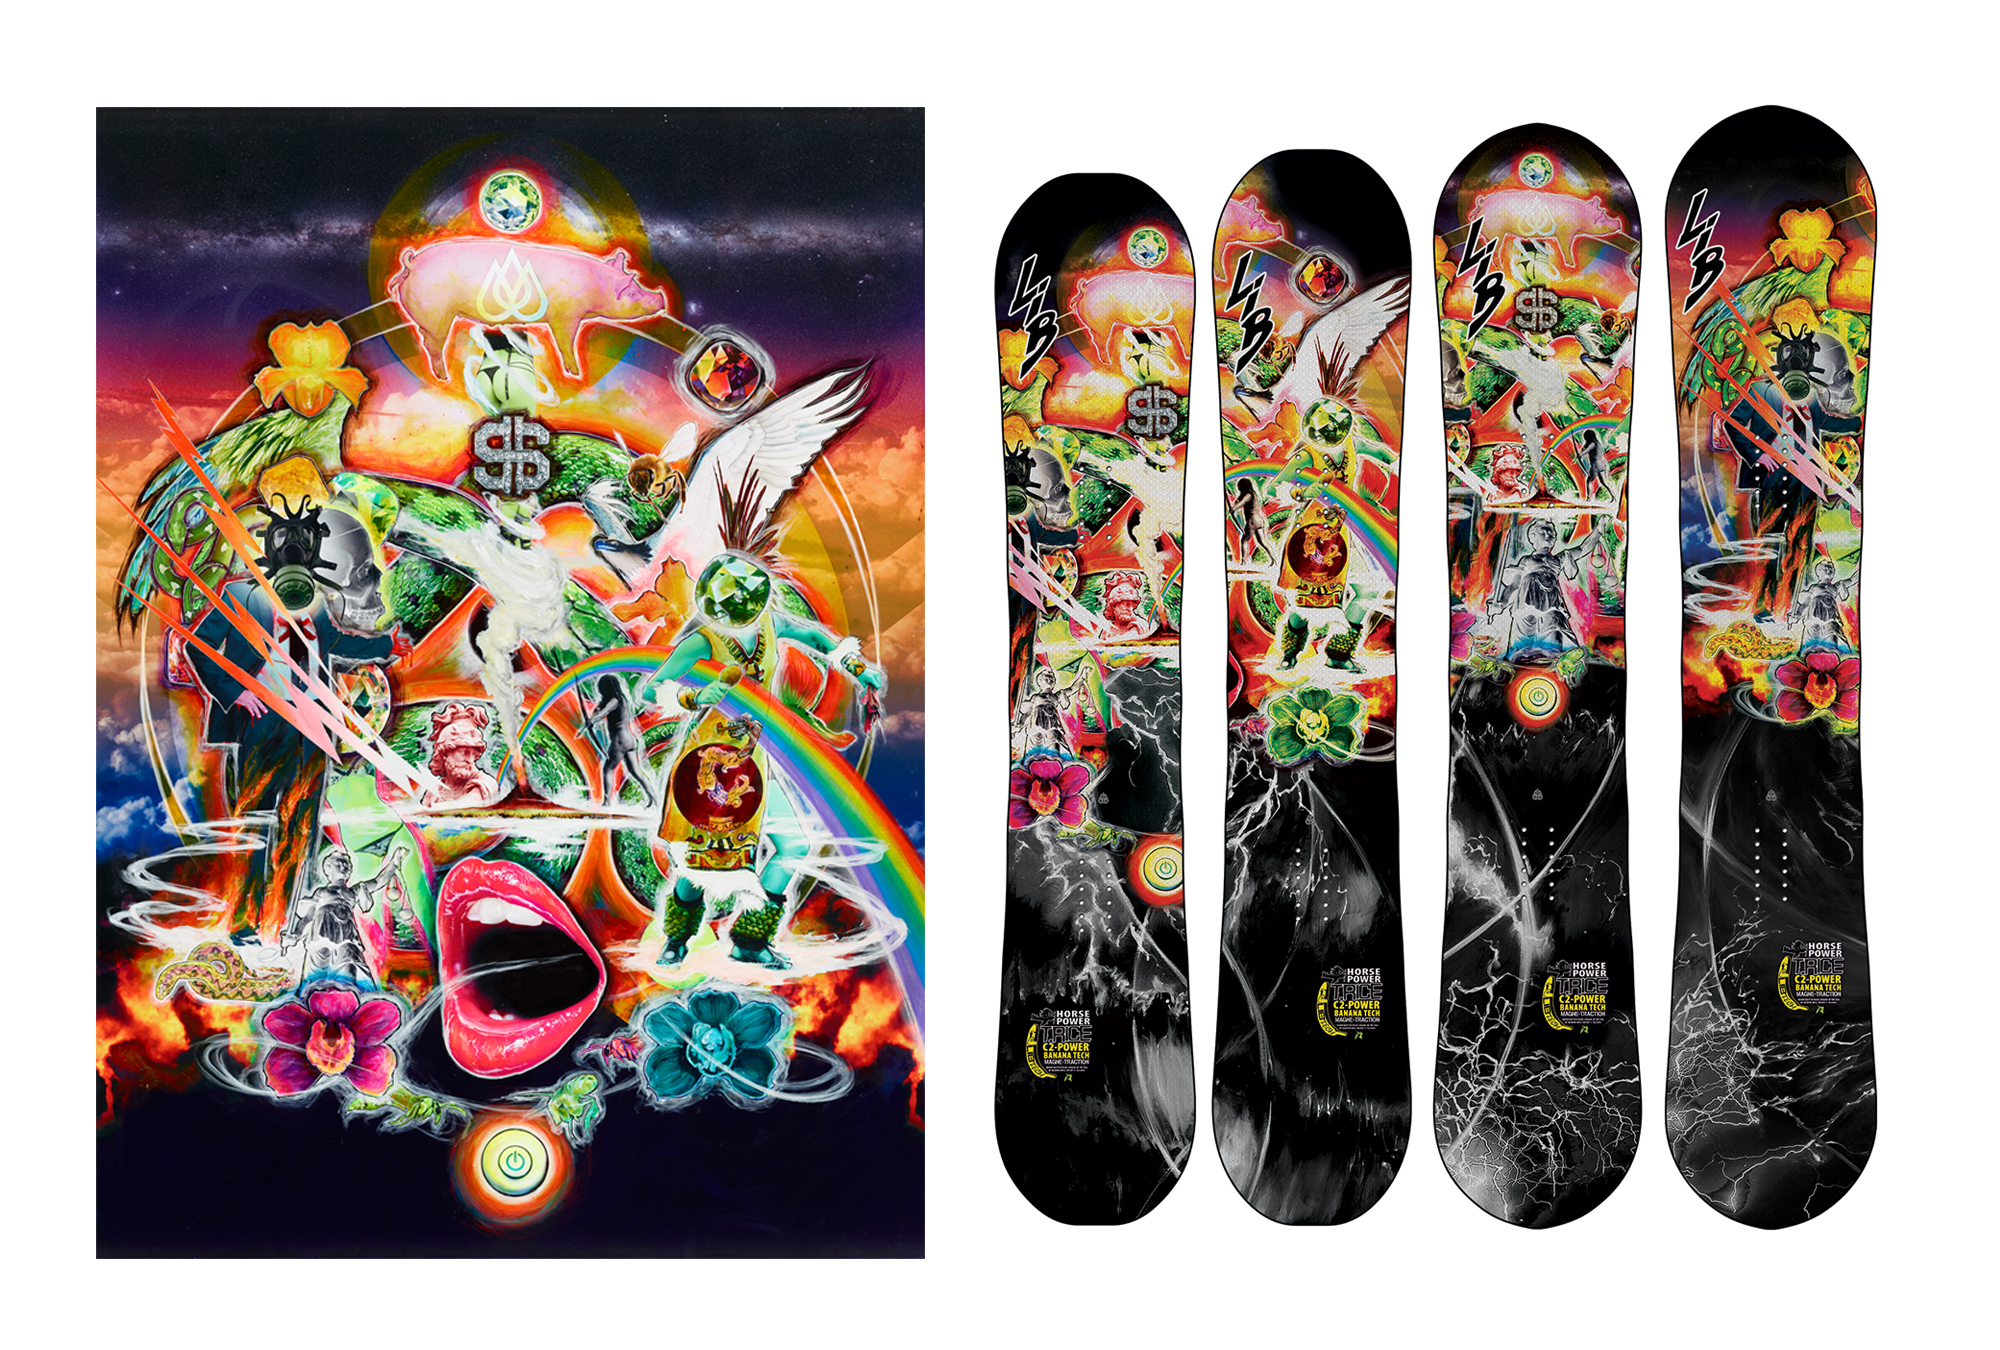 Various Lib Technologies snowboard graphics 2004 - 2016. Collaboration with Travis Rice & Mike Parillo